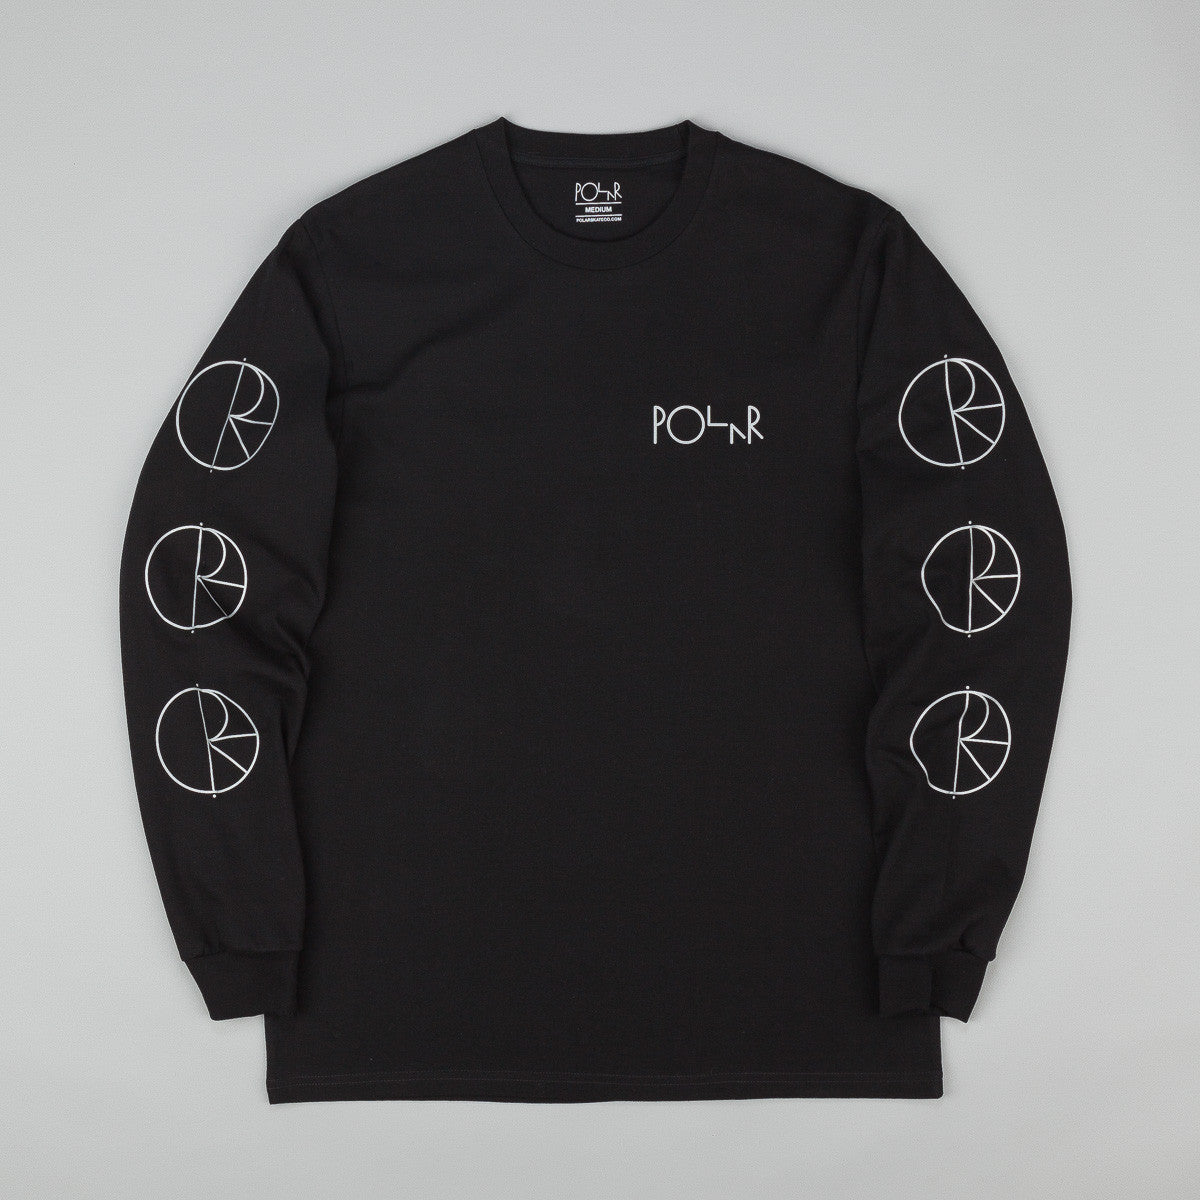 Polar Reflective Long Sleeve T-Shirt - Black / Reflective Silver